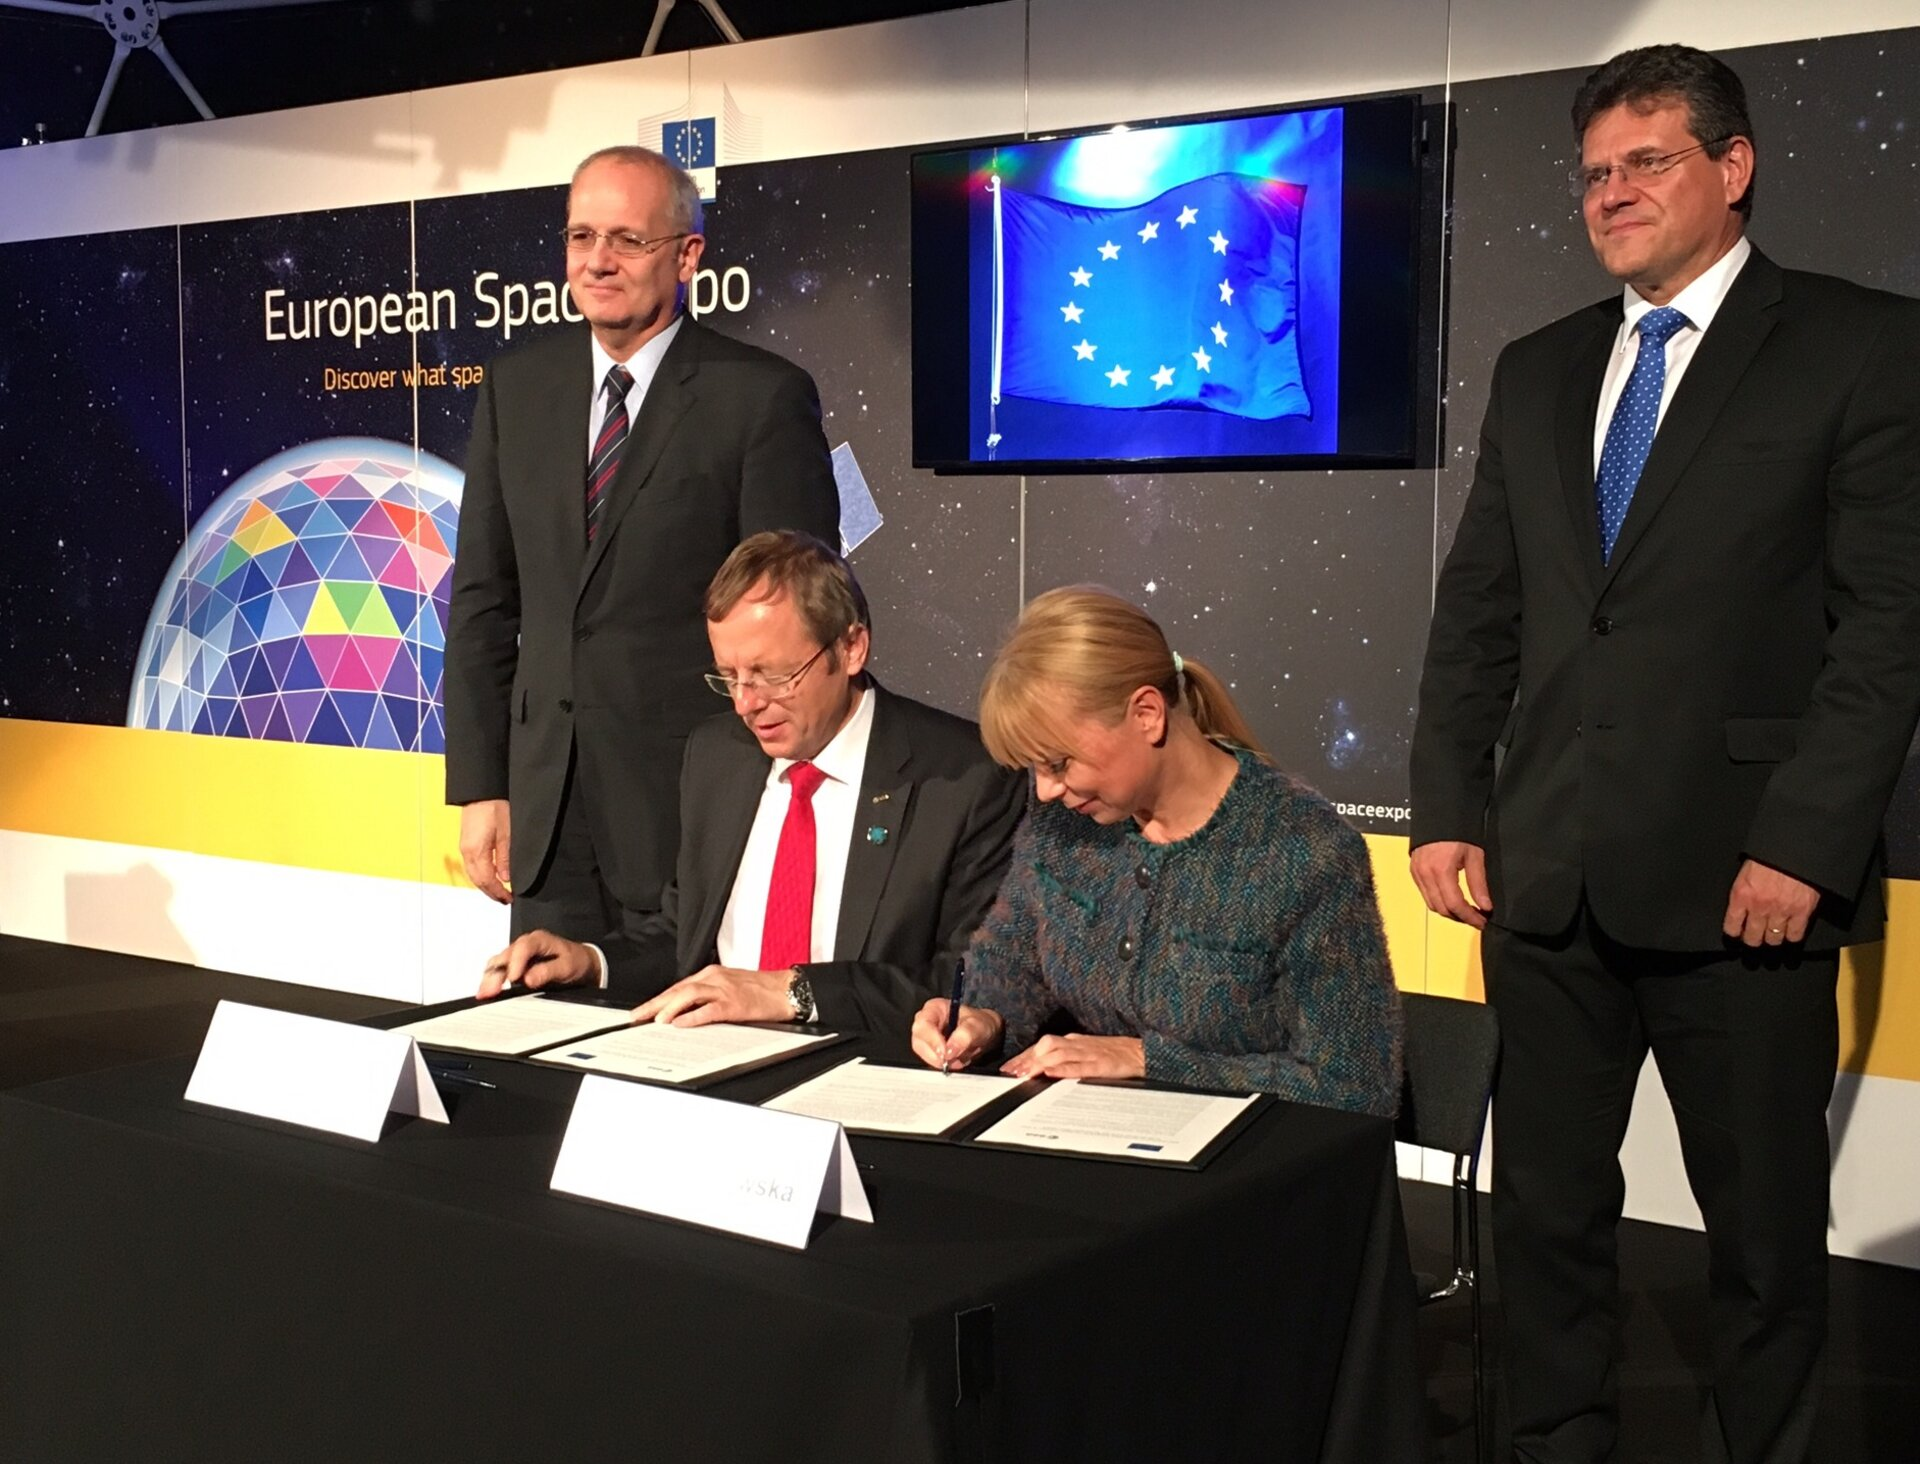 Signature of ESA/EU Joint Statement on Shared Vision and Goals